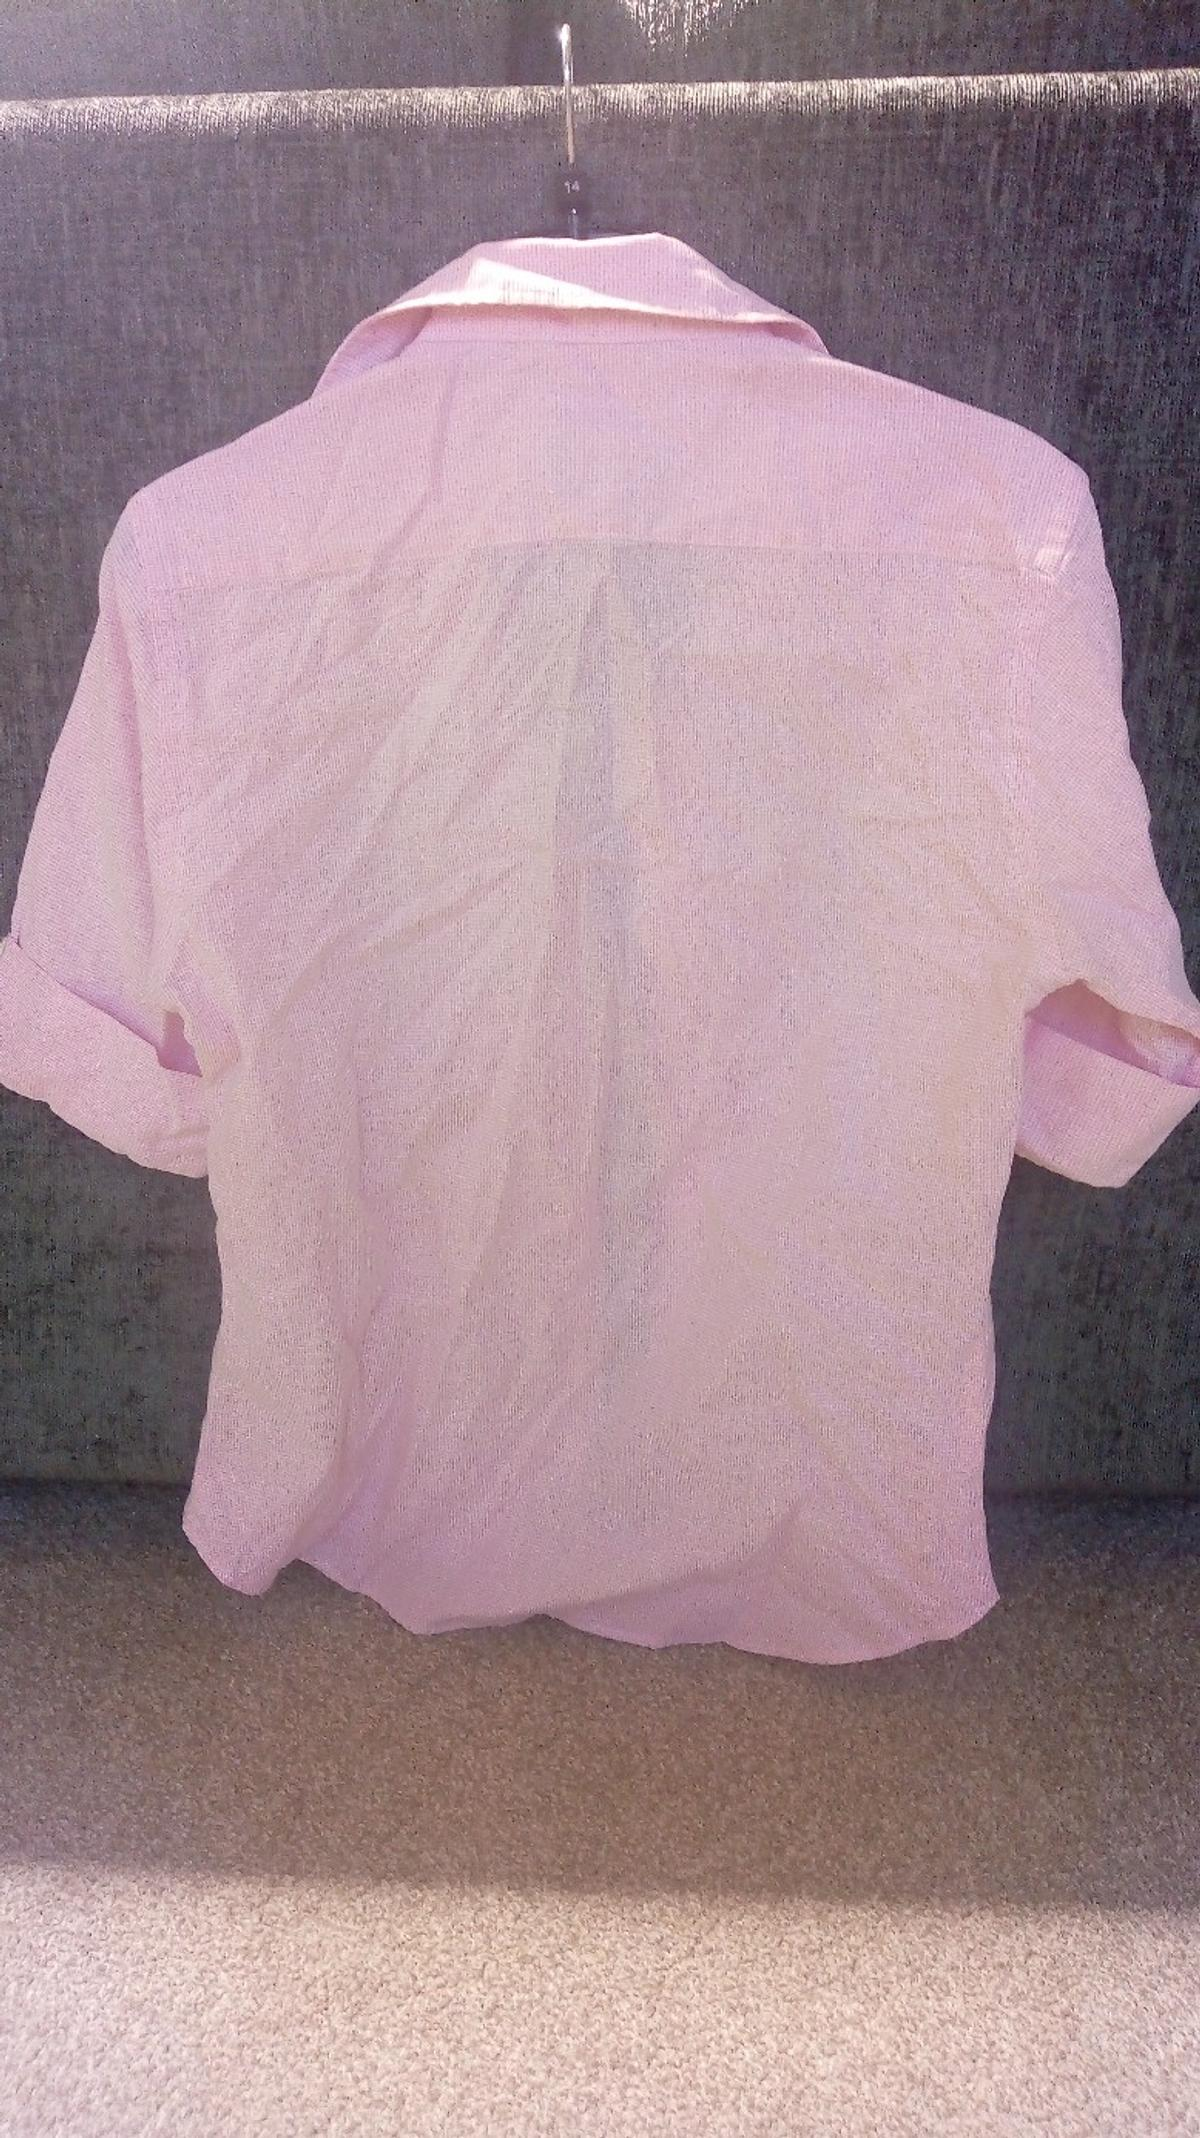 size large hardly worn cotton material lots of other clothing items for sale